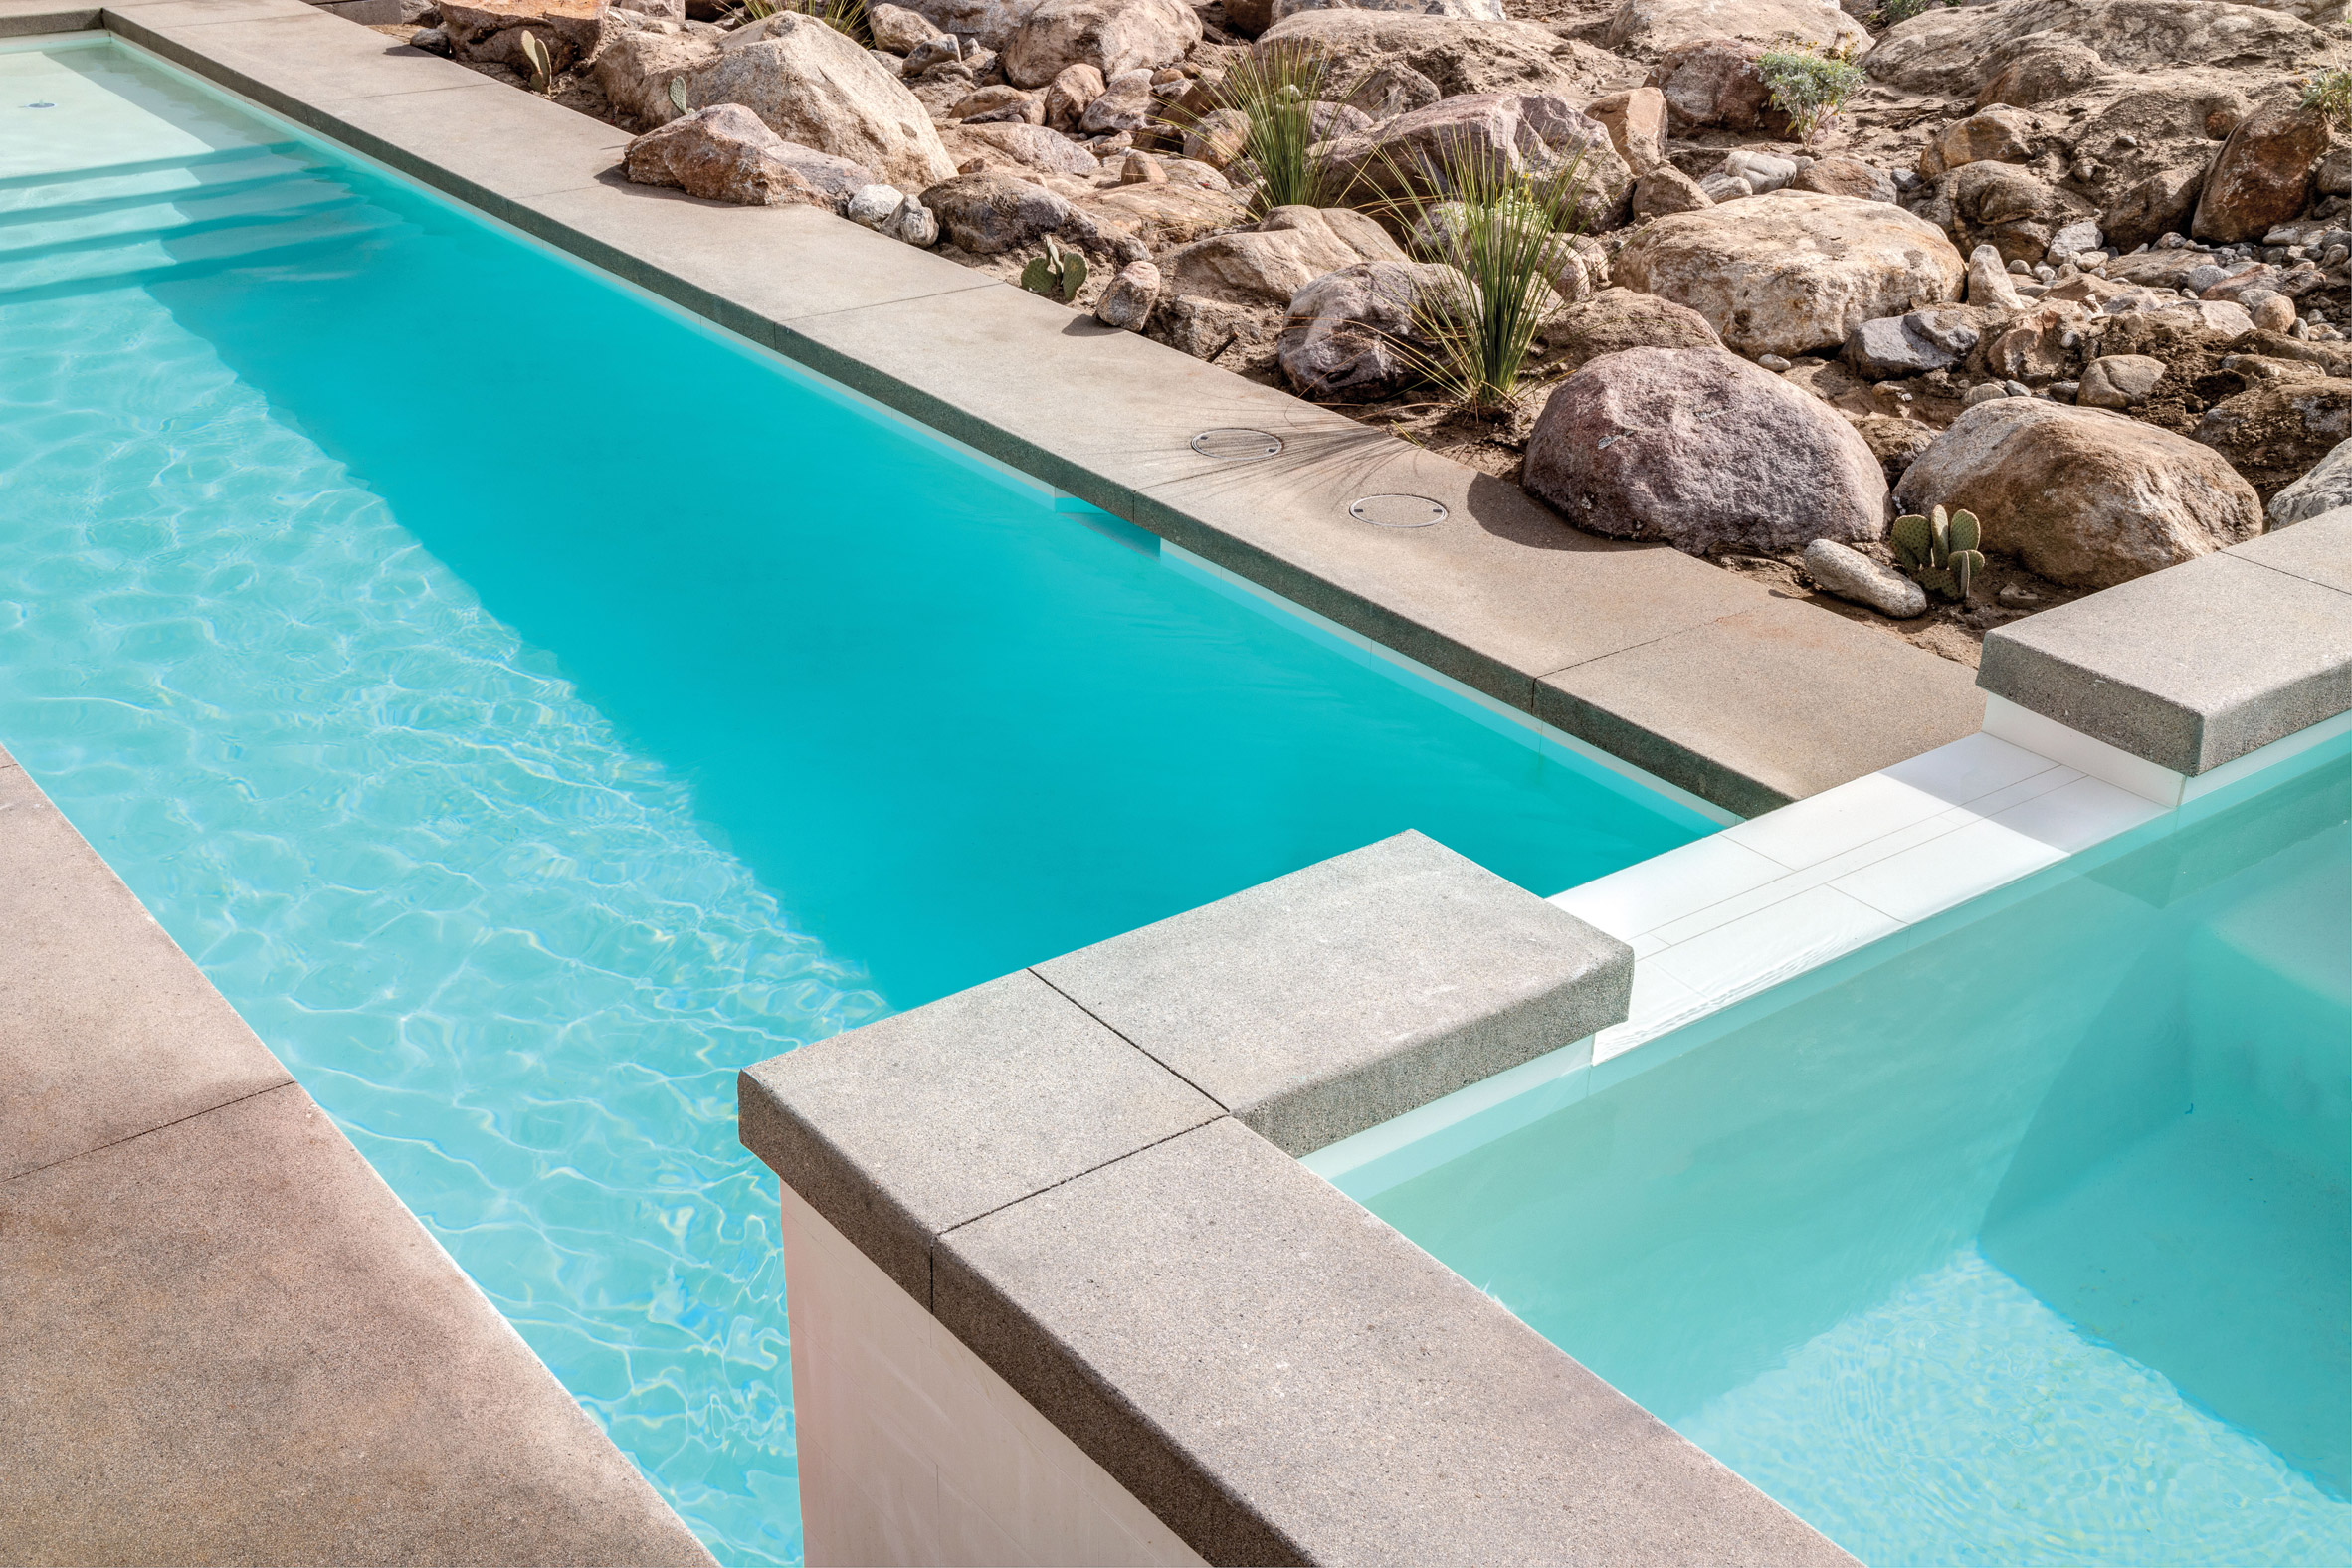 Modernist desert homes by o2 Architecture and Al Beadle complete in Palm Springs